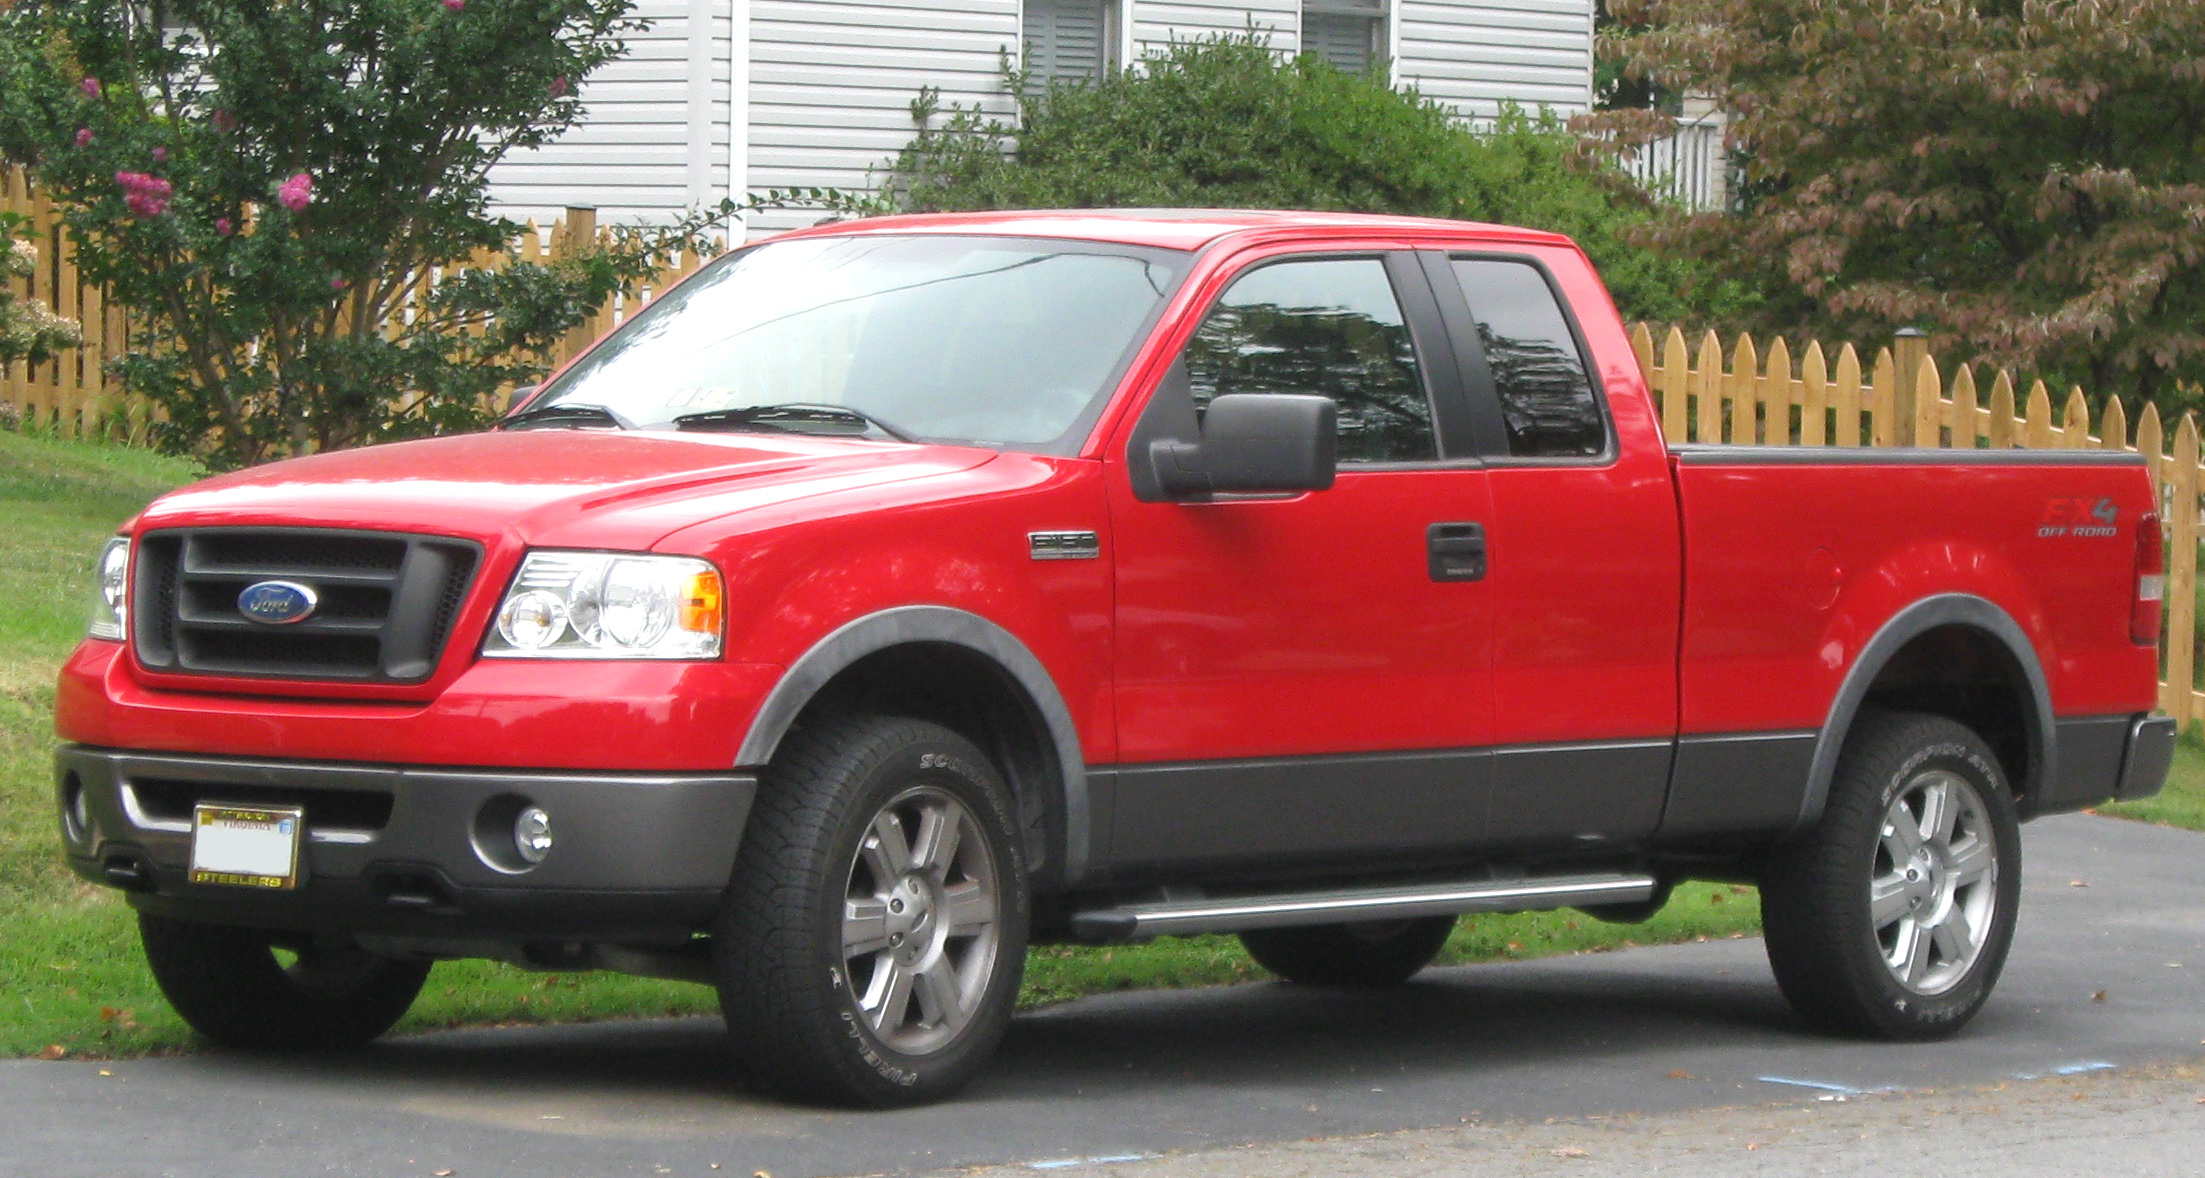 Wiring Diagram On 2007 F 150 Fx4 Diy Enthusiasts Diagrams 2004 Ford Lariat 4x4 File 09 07 2009 Wikipedia Rh En M Org Silver